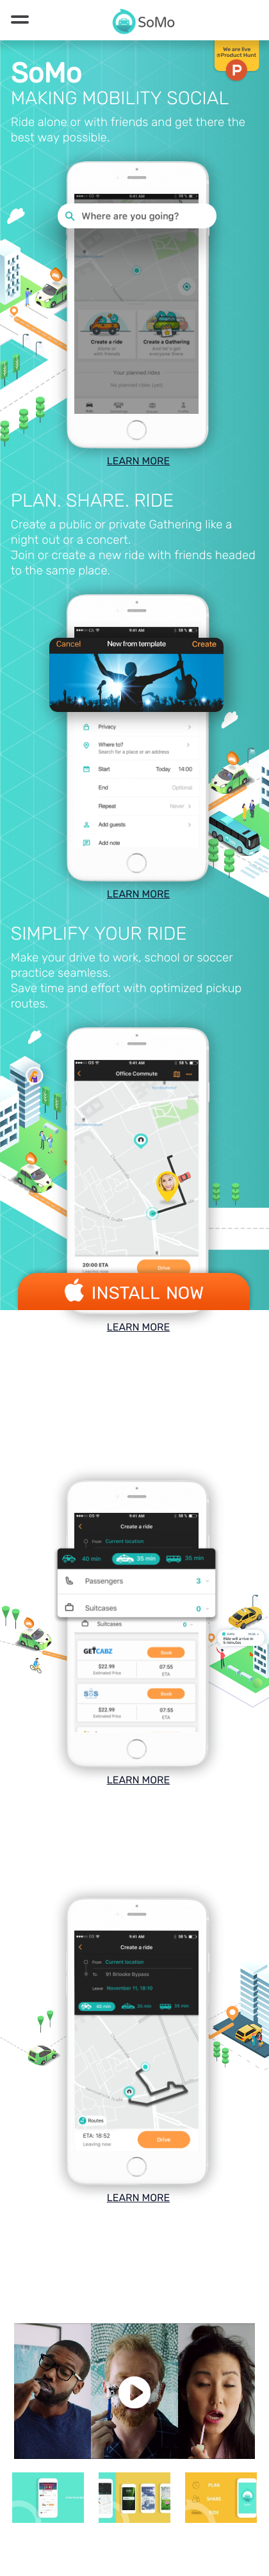 Example of Design for Uncategorized, Mobile Landing Page by somo.com | Mobile Landing Page Design